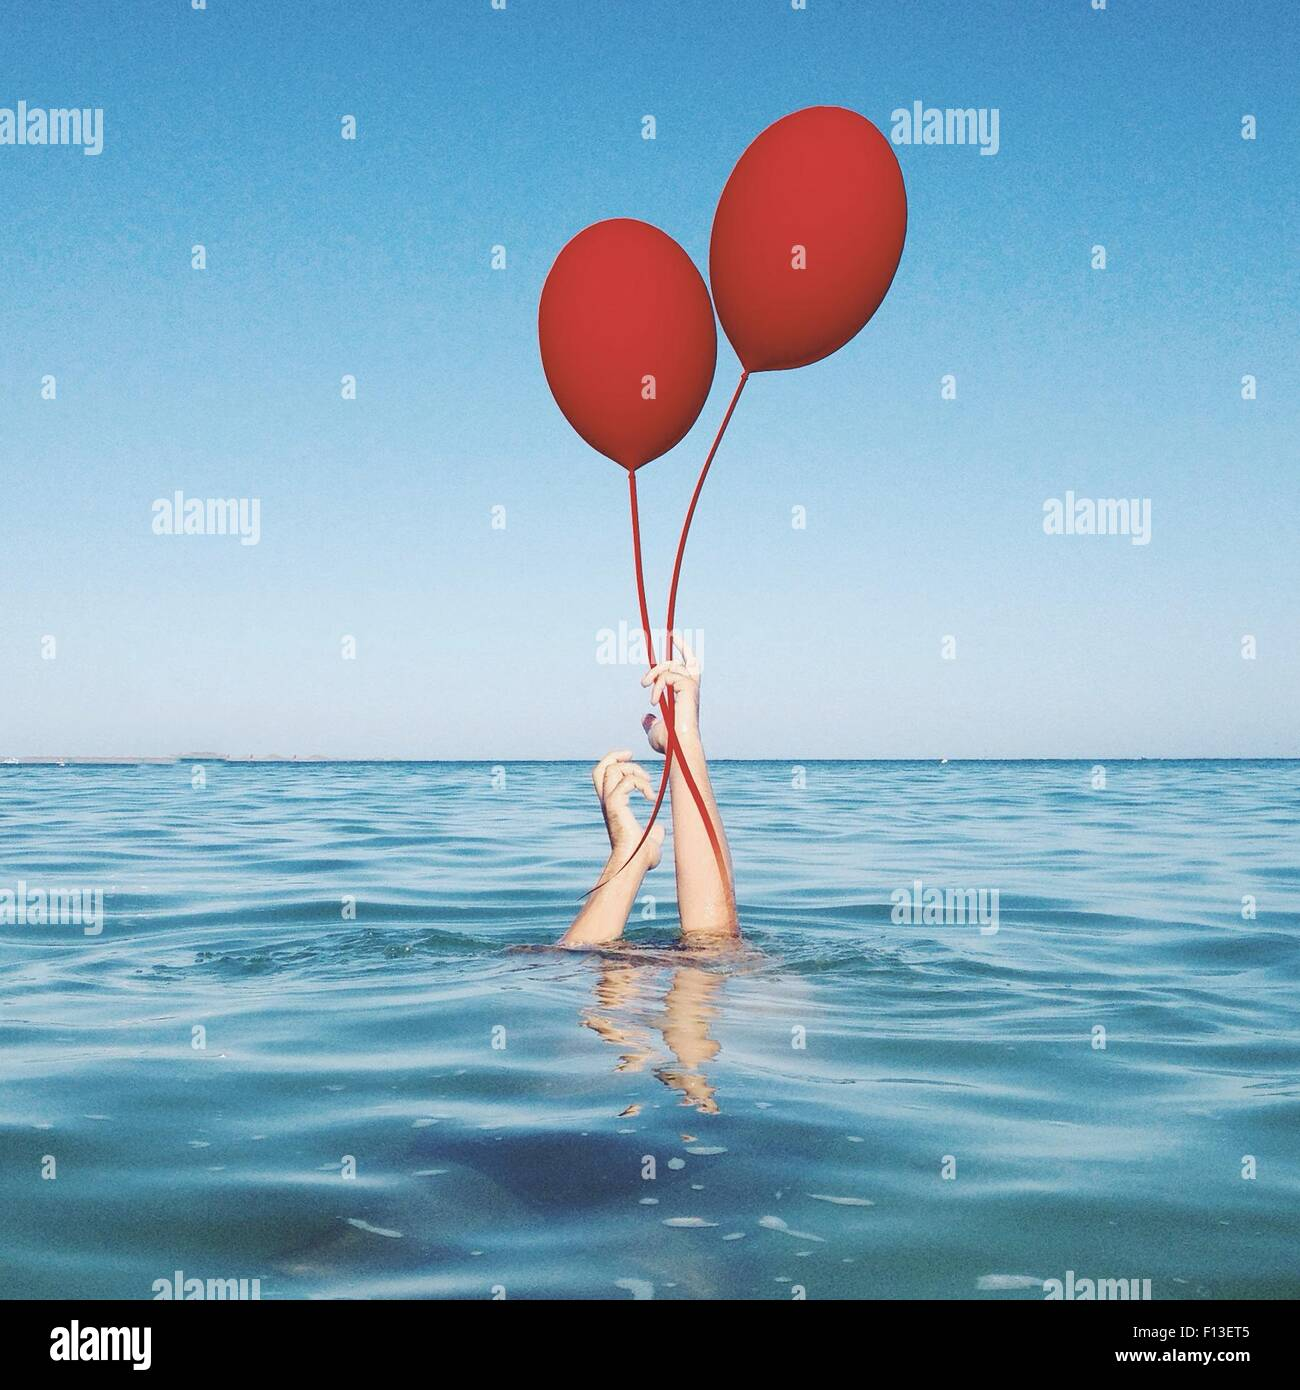 Human hands coming out of the sea holding two balloons - Stock Image